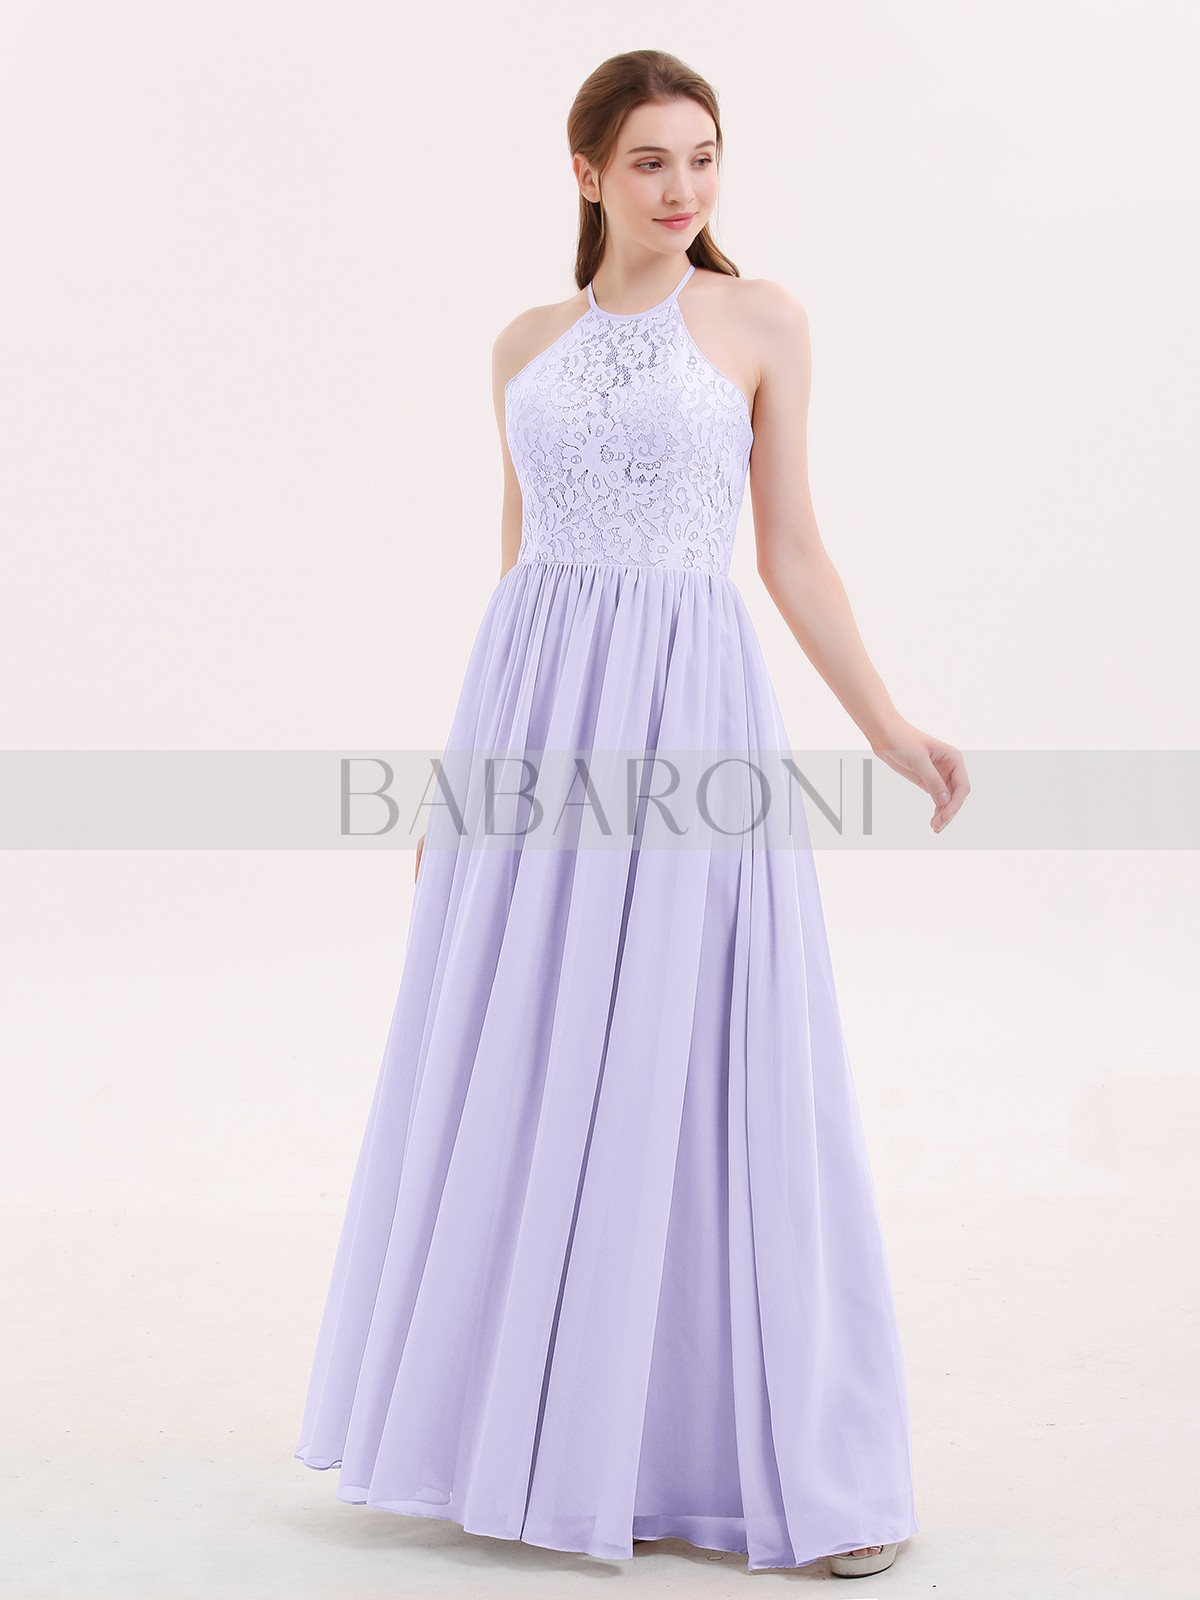 bed3398b6c ... Long Bridesmaid Dresses; Babaroni Theresa. A-line Chiffon Dusk  Criss-Cross Straps Lace, Ruched Floor-length Halter. Loading zoom